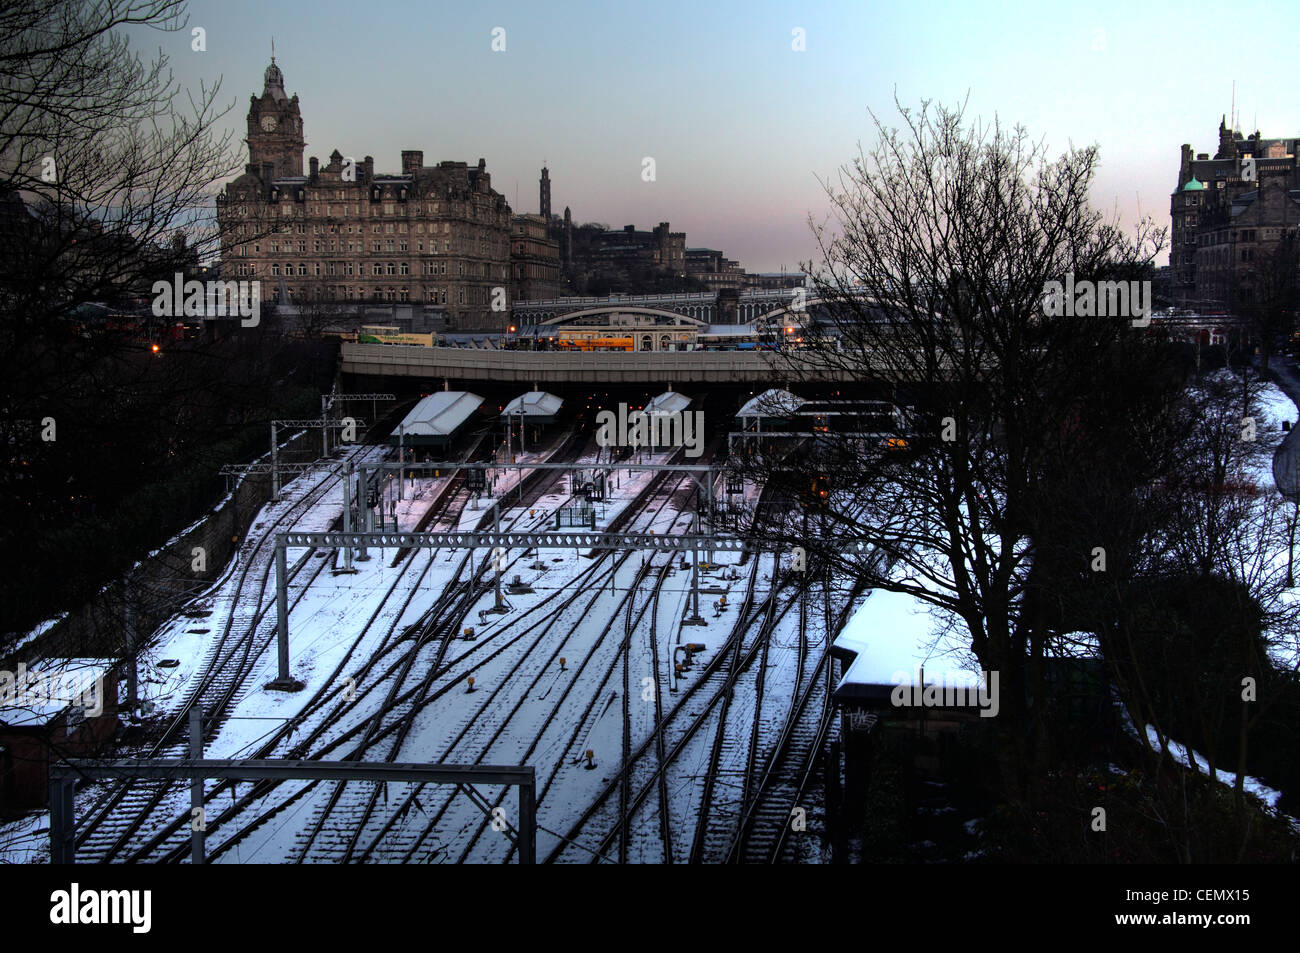 Edinburgh Waverley Station in winter snow, cold weather and ice on rail tracks in Scotland UK @HotpixUK - Stock Image